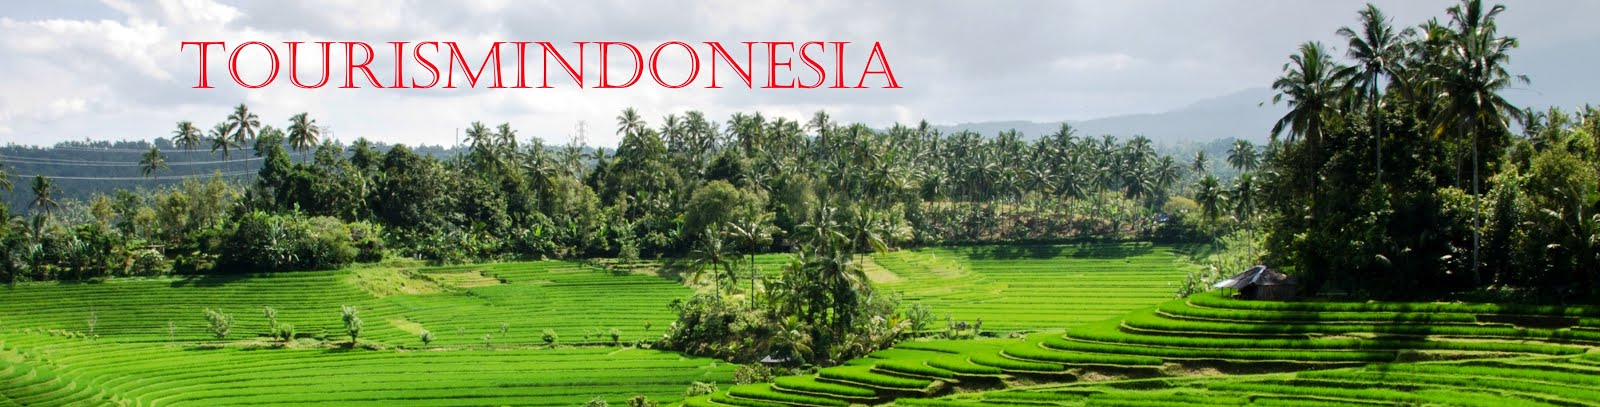 Tourism Indonesia